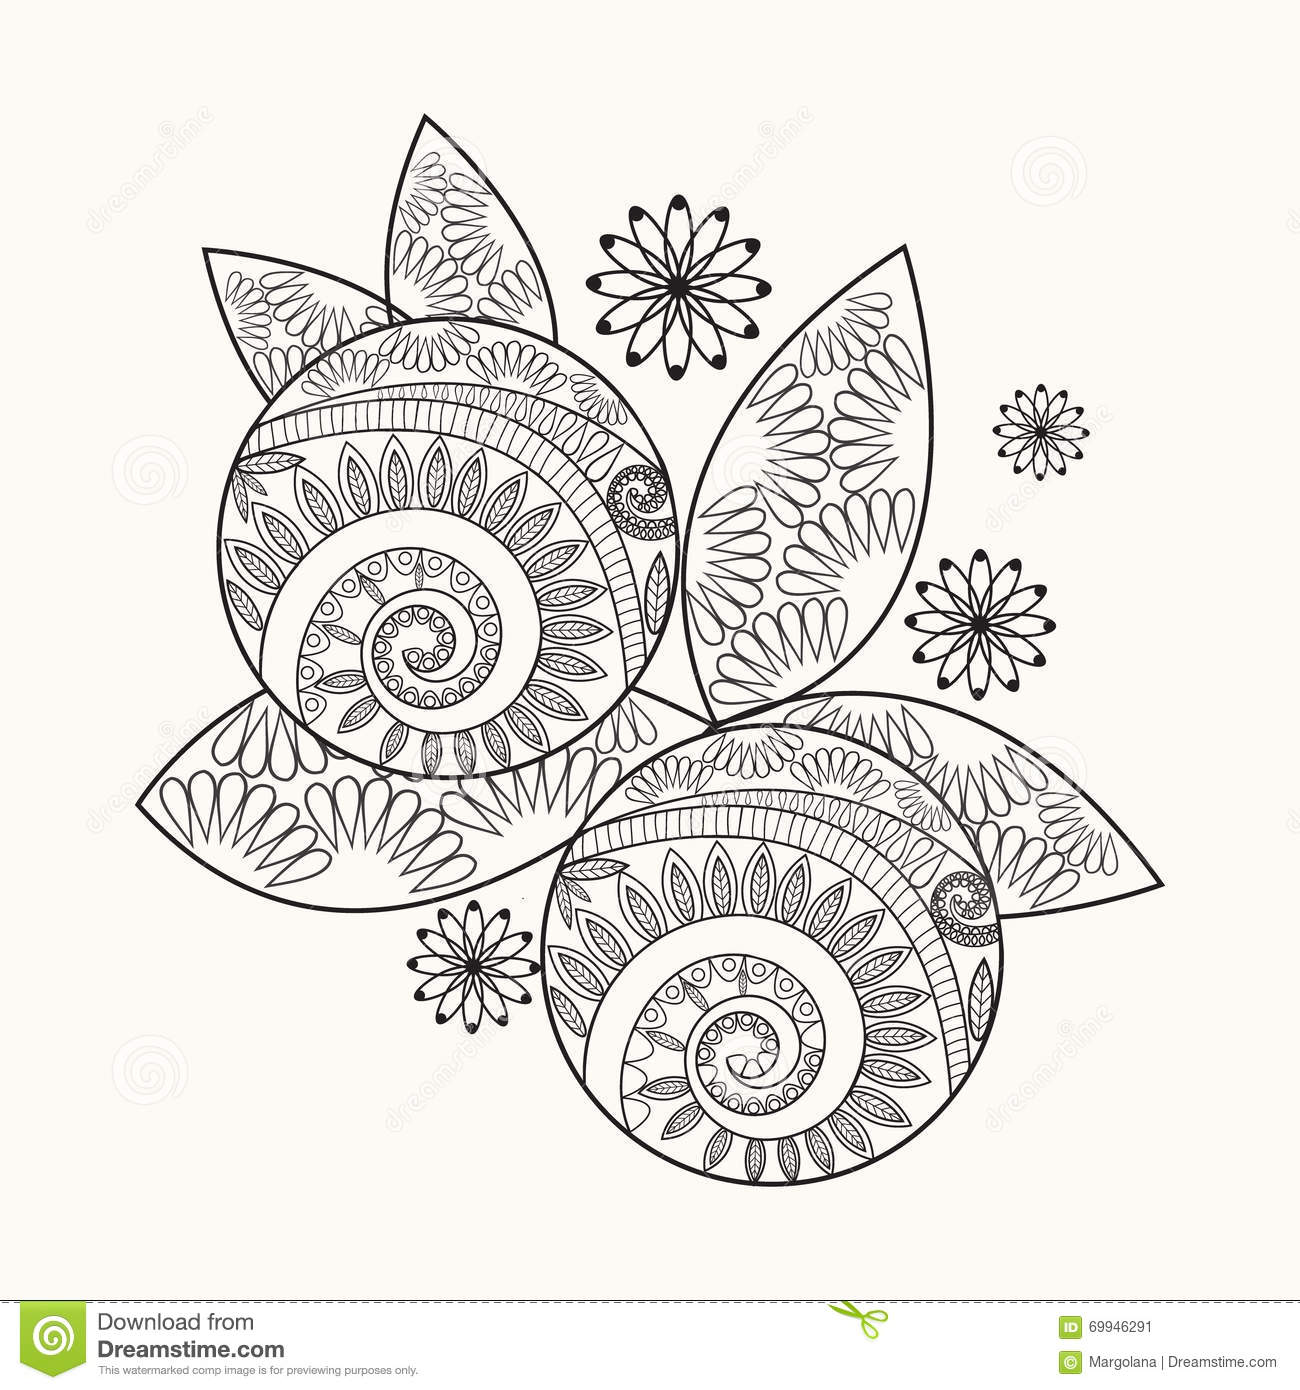 Orange Hand Drawn For Coloring Page Stock Vector - Illustration of ...